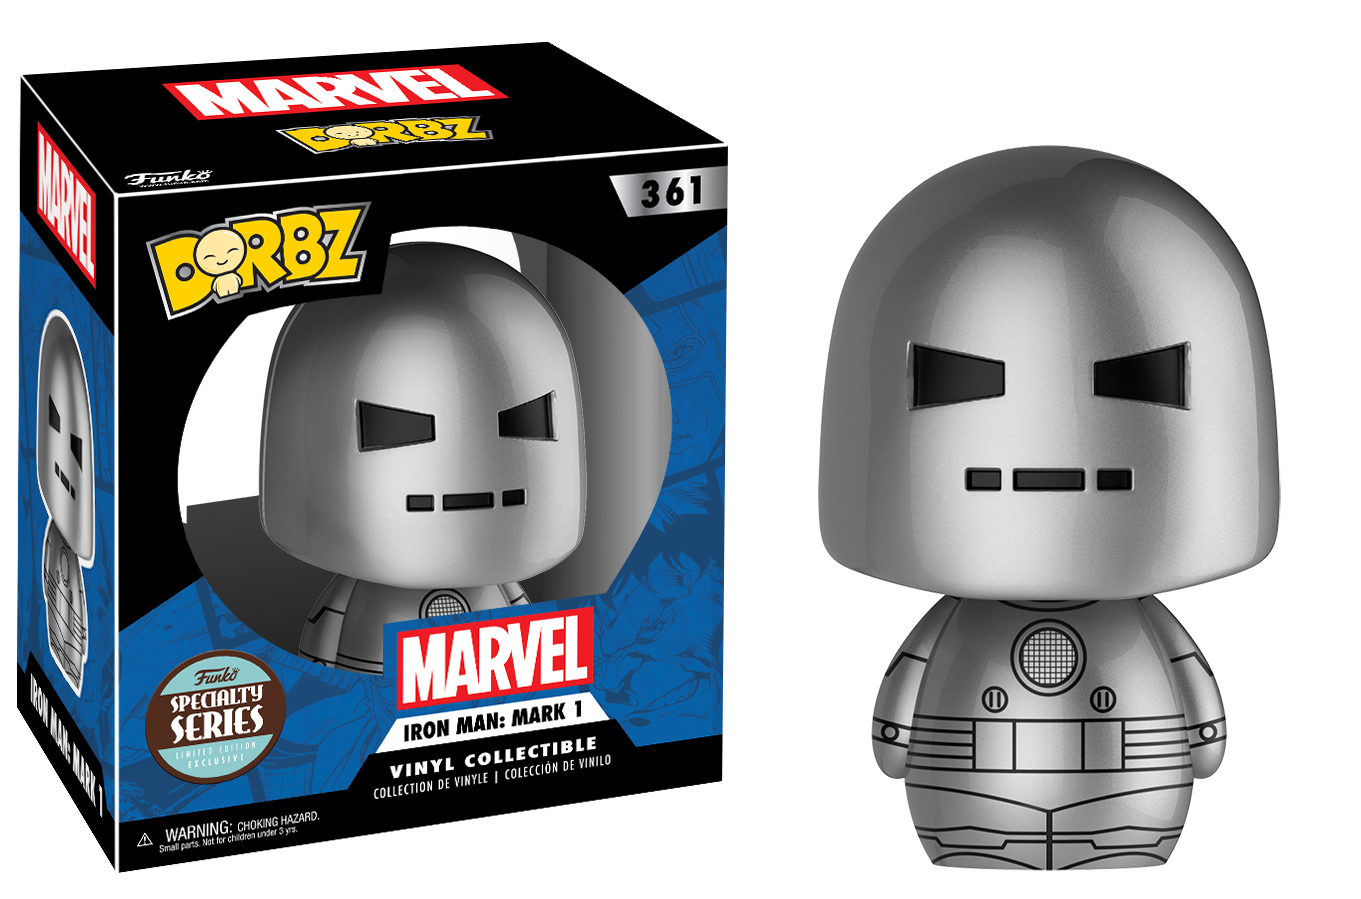 Marvel - Iron Man Mark 1 Dorbz Vinyl Figure image